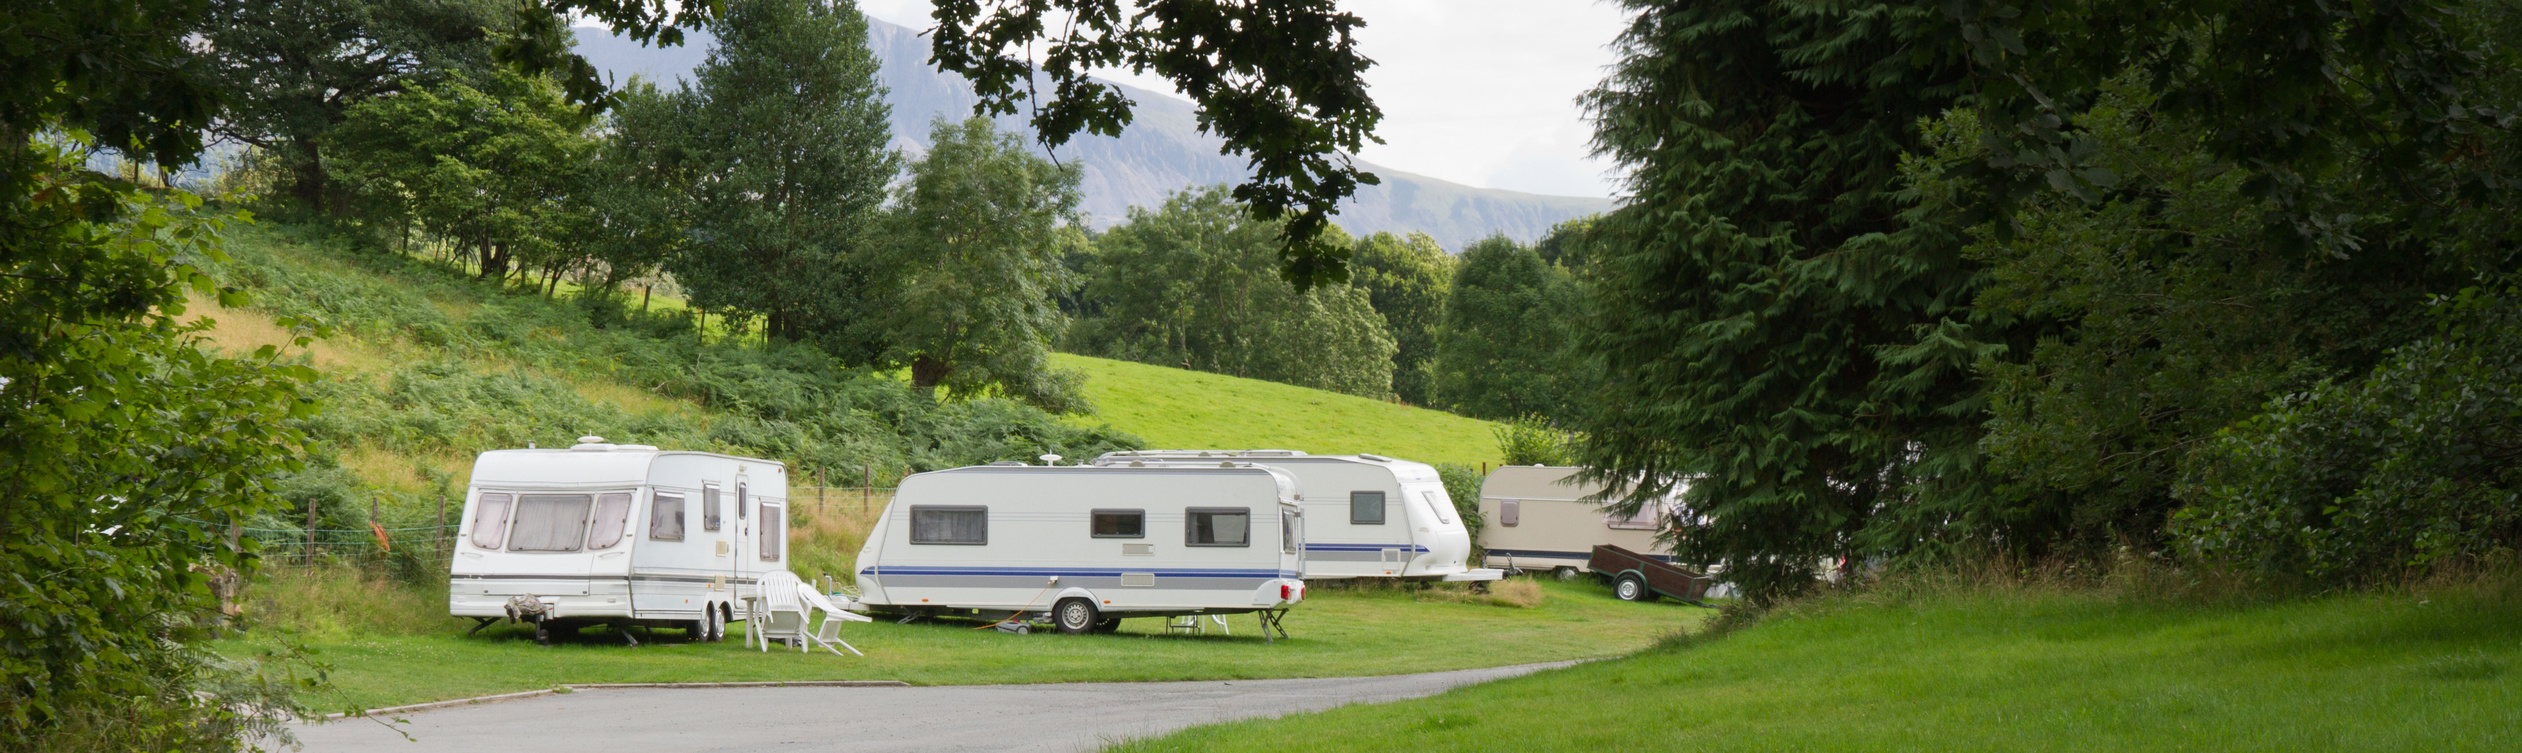 a row of caravans in the countryside